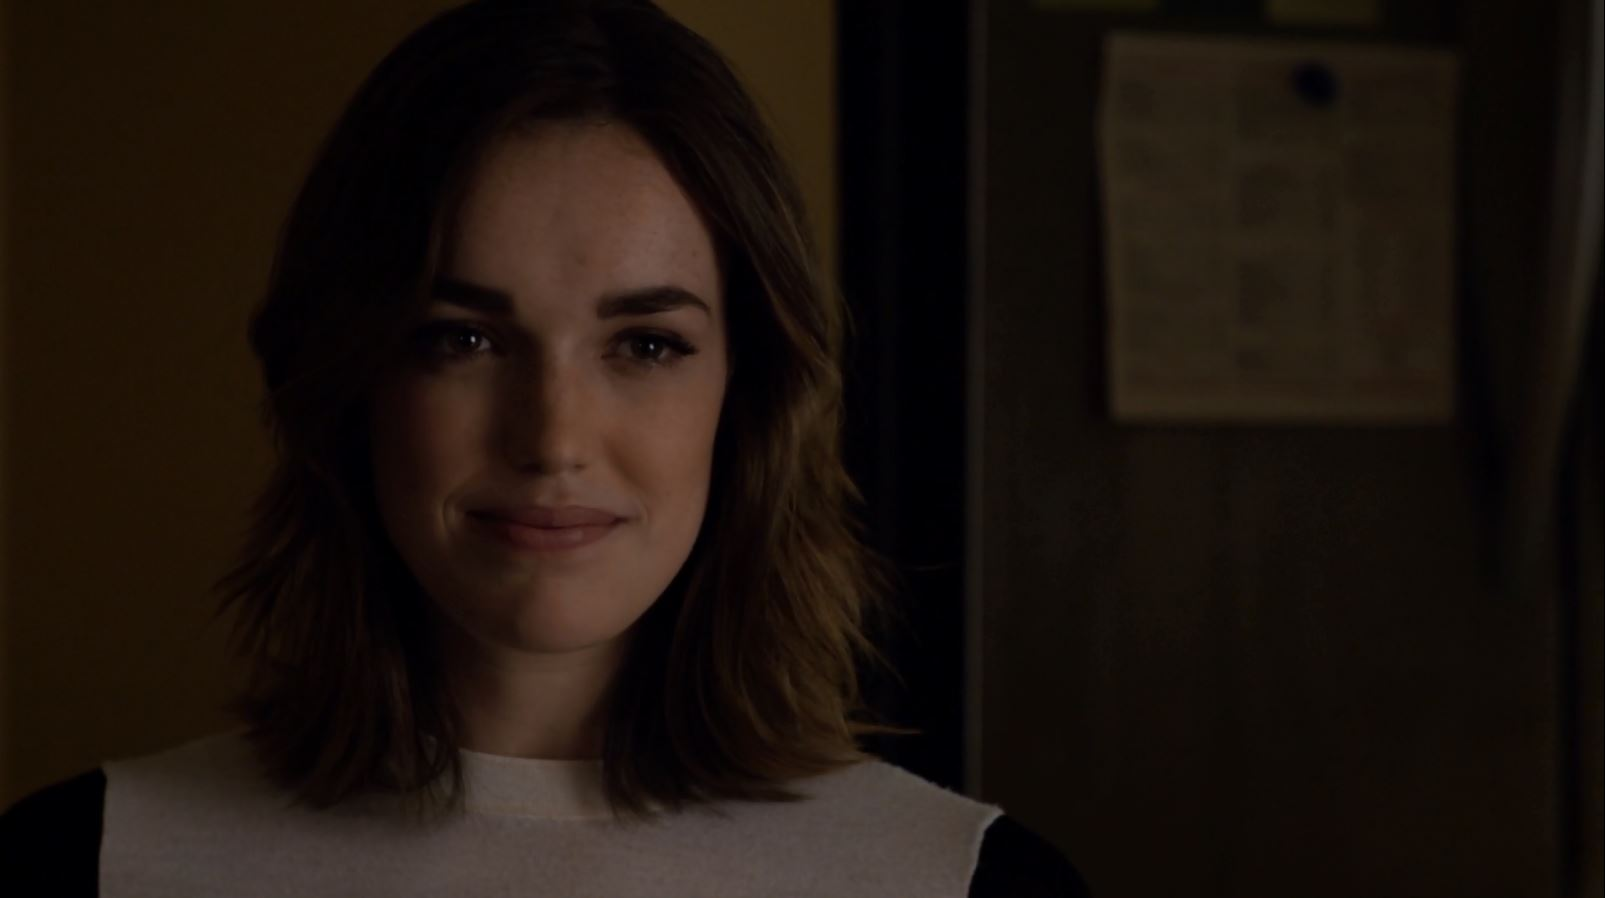 Jemma Simmons (Elizabeth Henstridge) as Agent of HYDRA - Agents of SHIELD S2Ep3 Making Friends and Influencing People Review